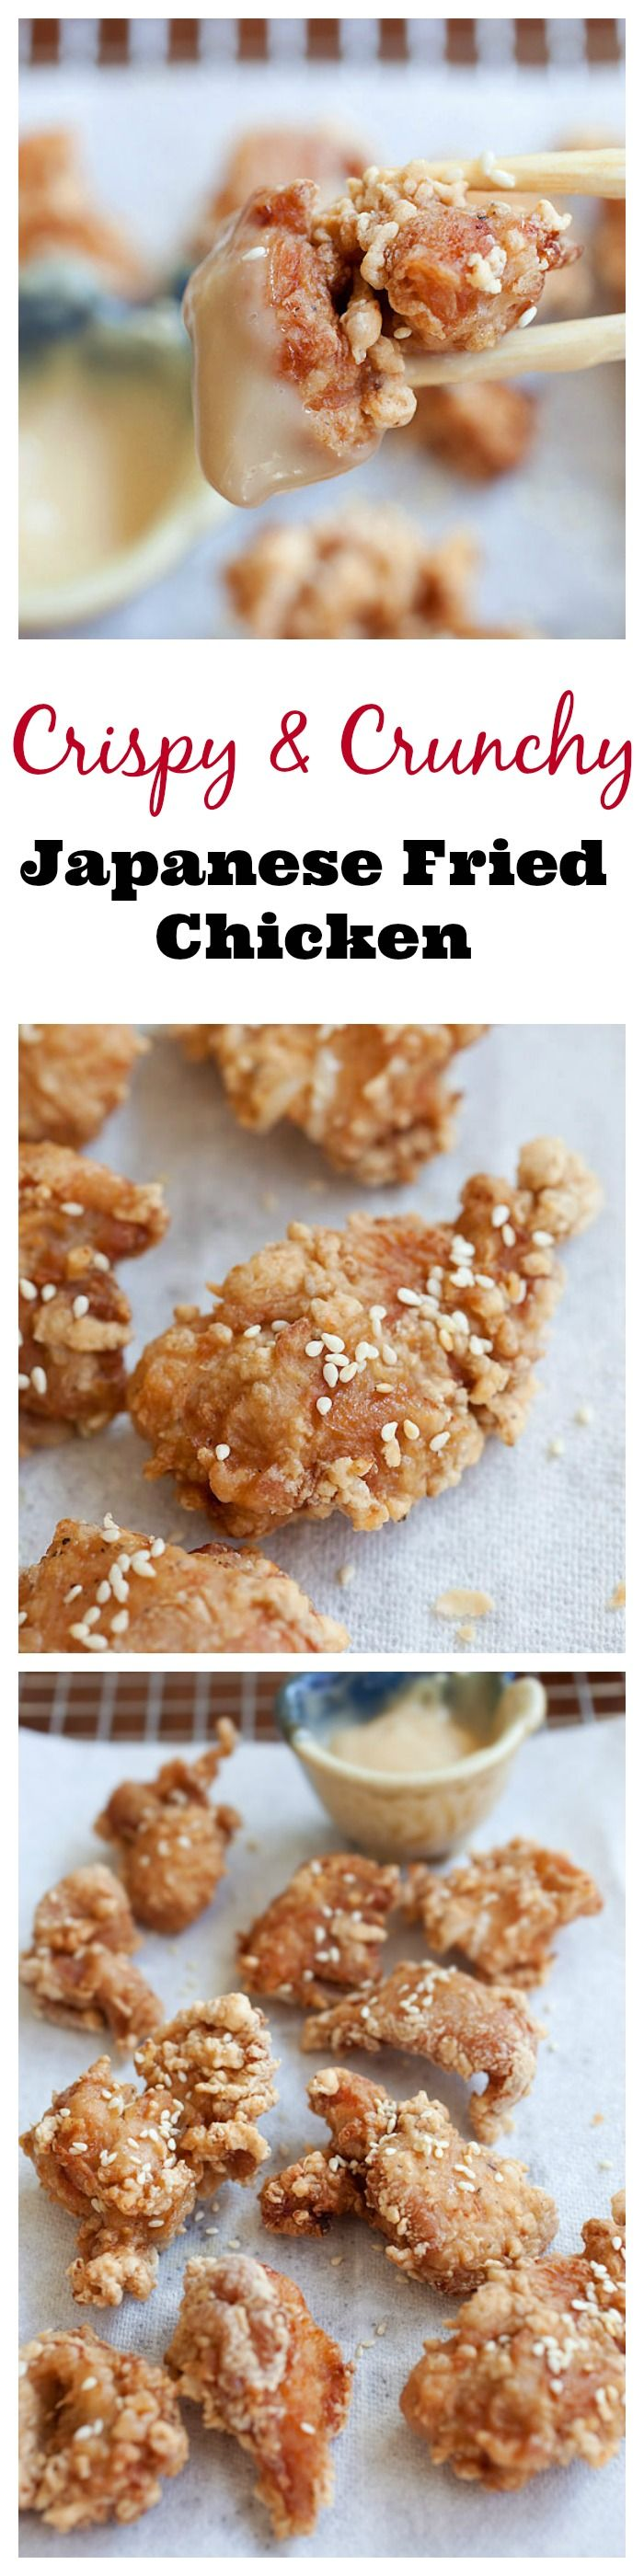 Crispy and Crunchy Japanese fried chicken recipe with mayo miso dipping sauce just like your favorite Japanese restaurants   rasamalaysia.com